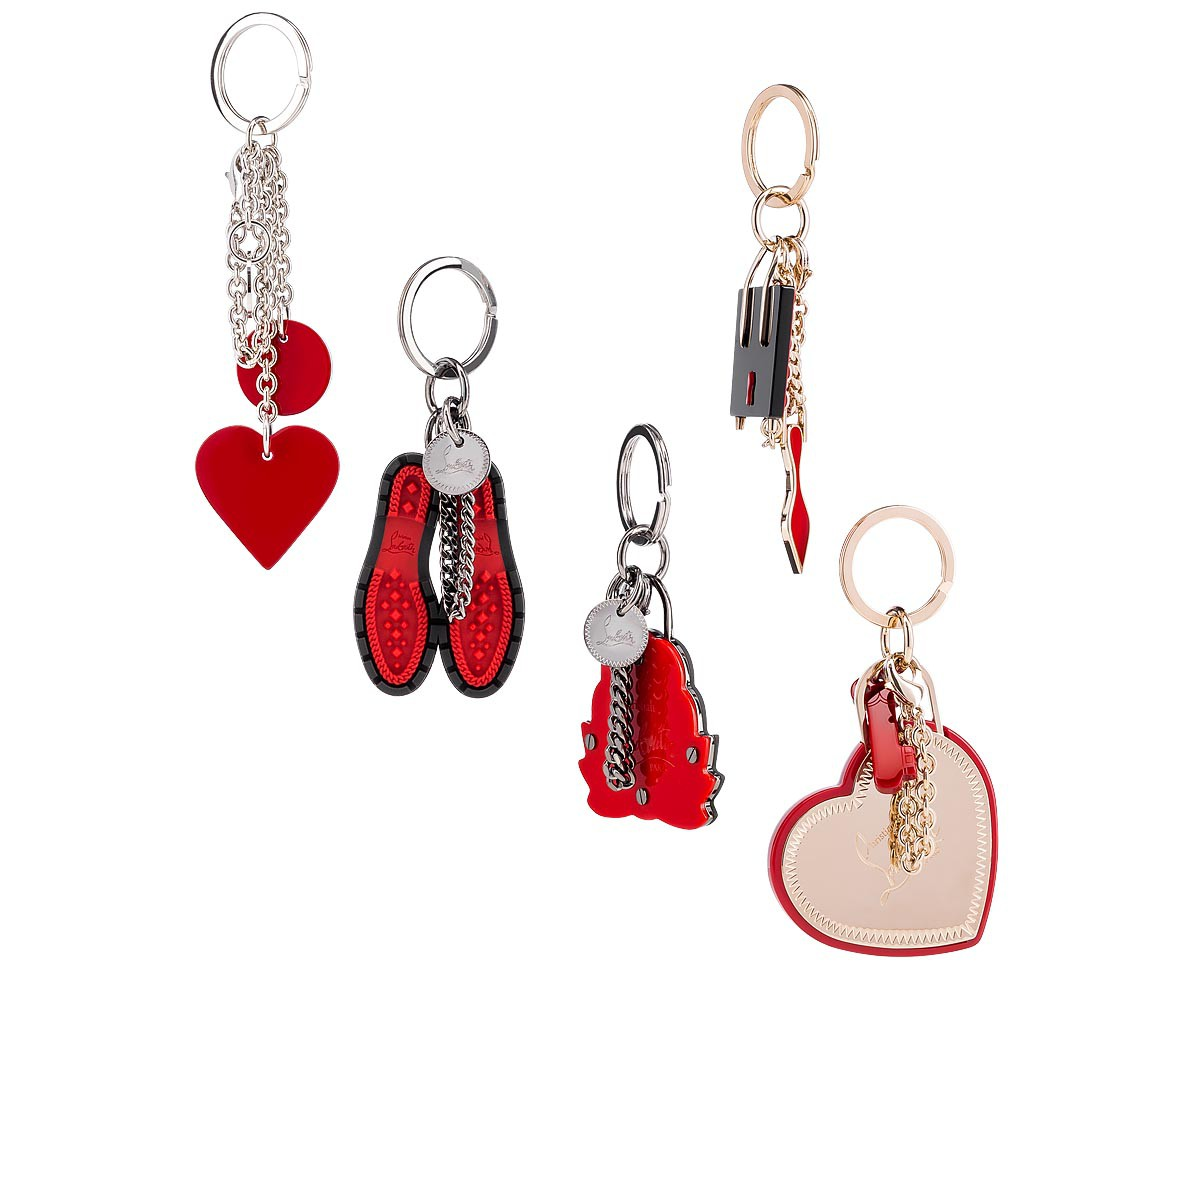 Accessories - M Lug Sole Keyring - Christian Louboutin